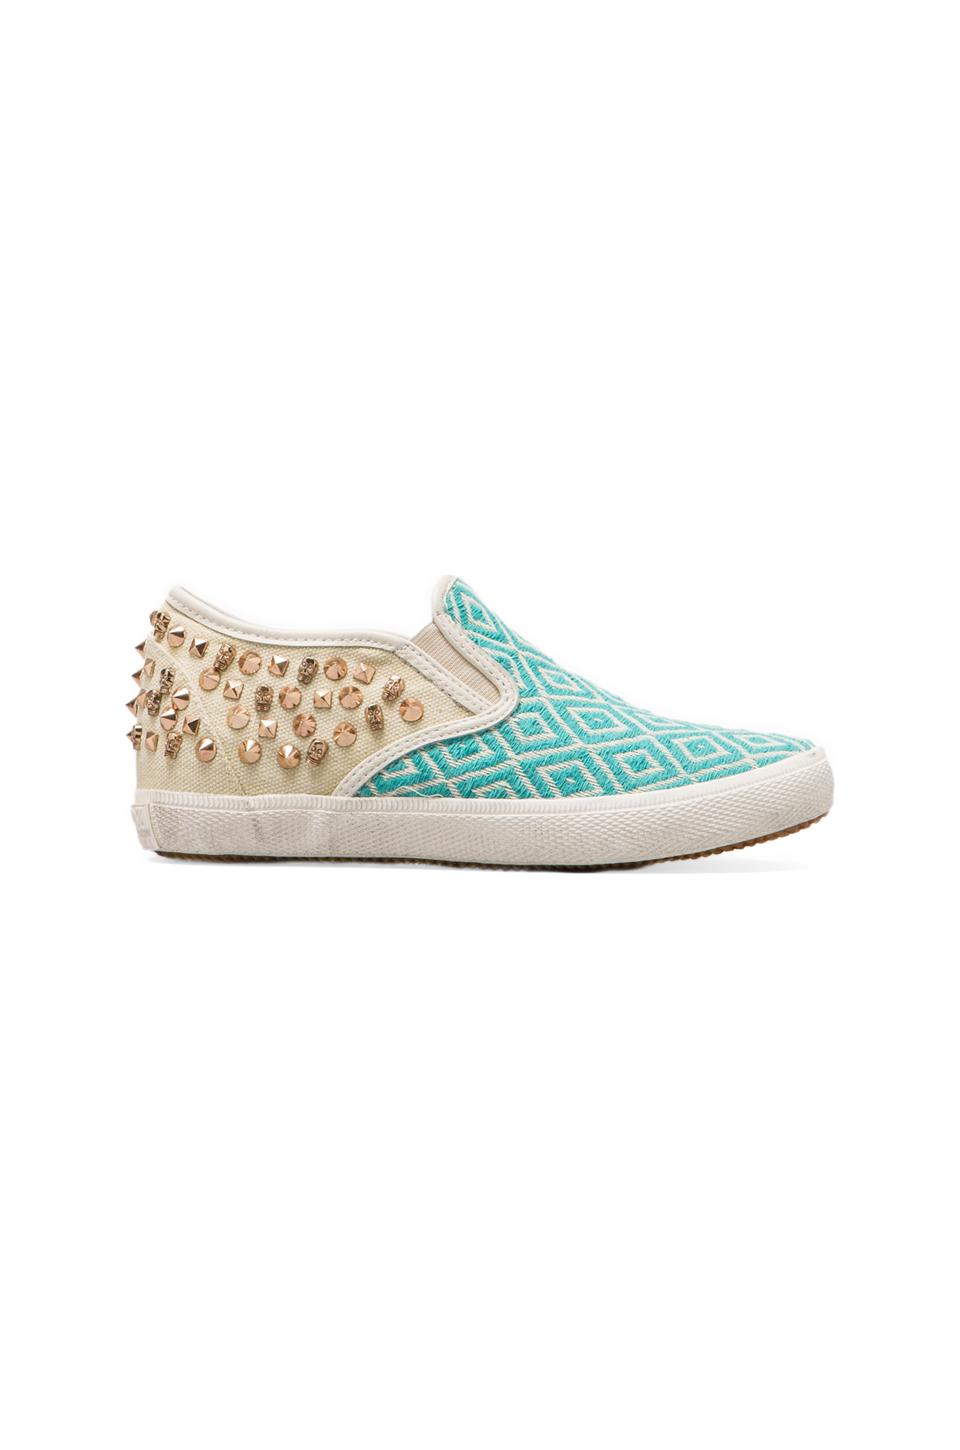 KIM & ZOZI Rio 200 Slip On in Blue